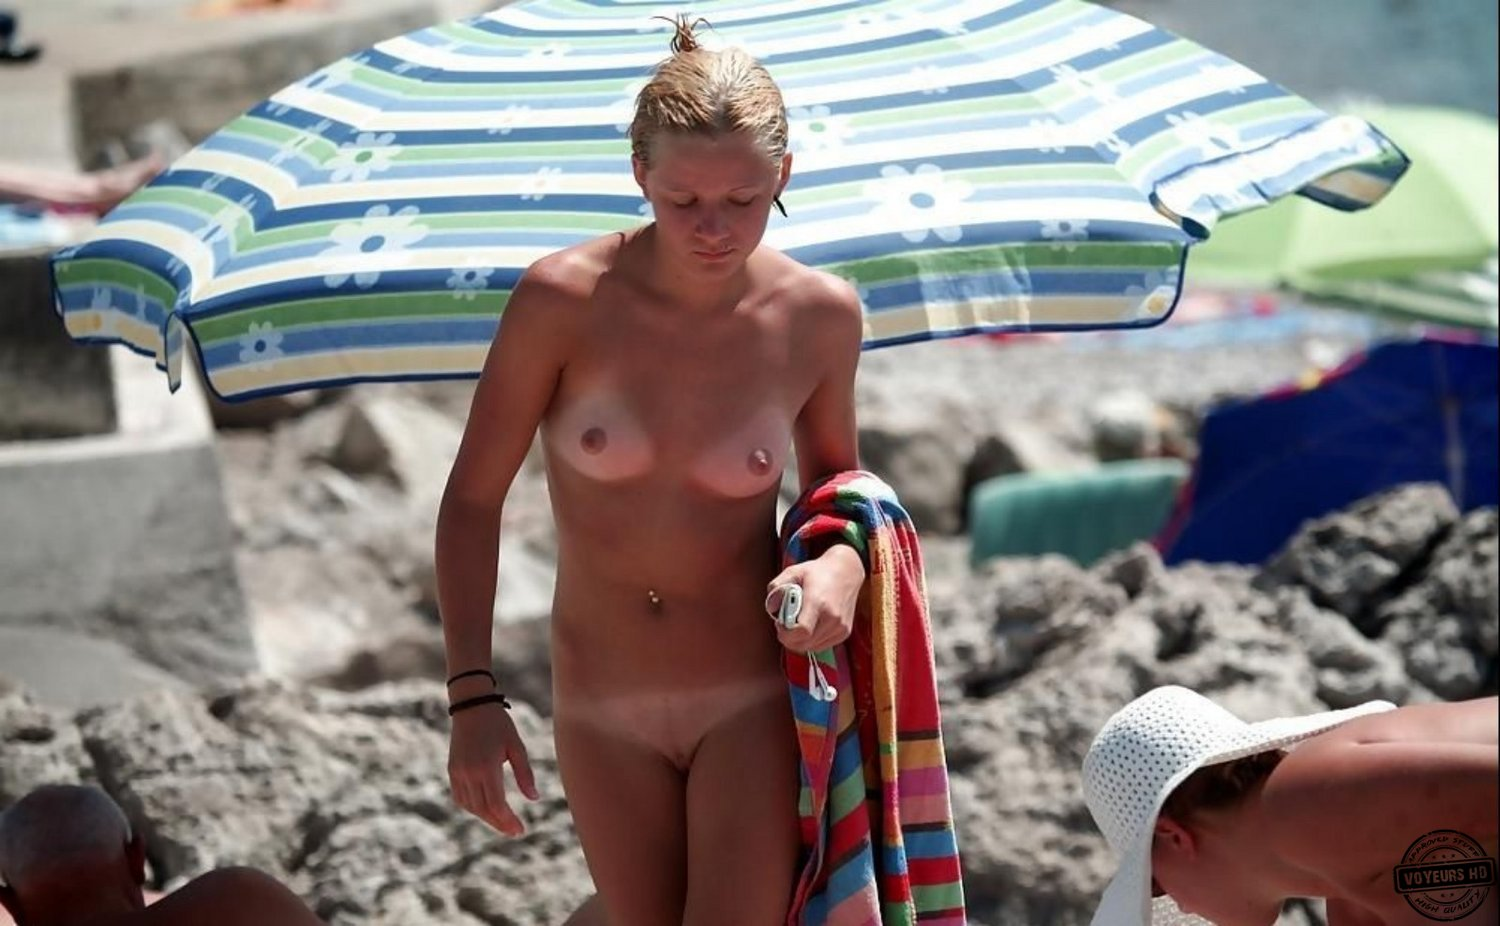 Mom And Daughter Nude On Beach Votes Views Categories